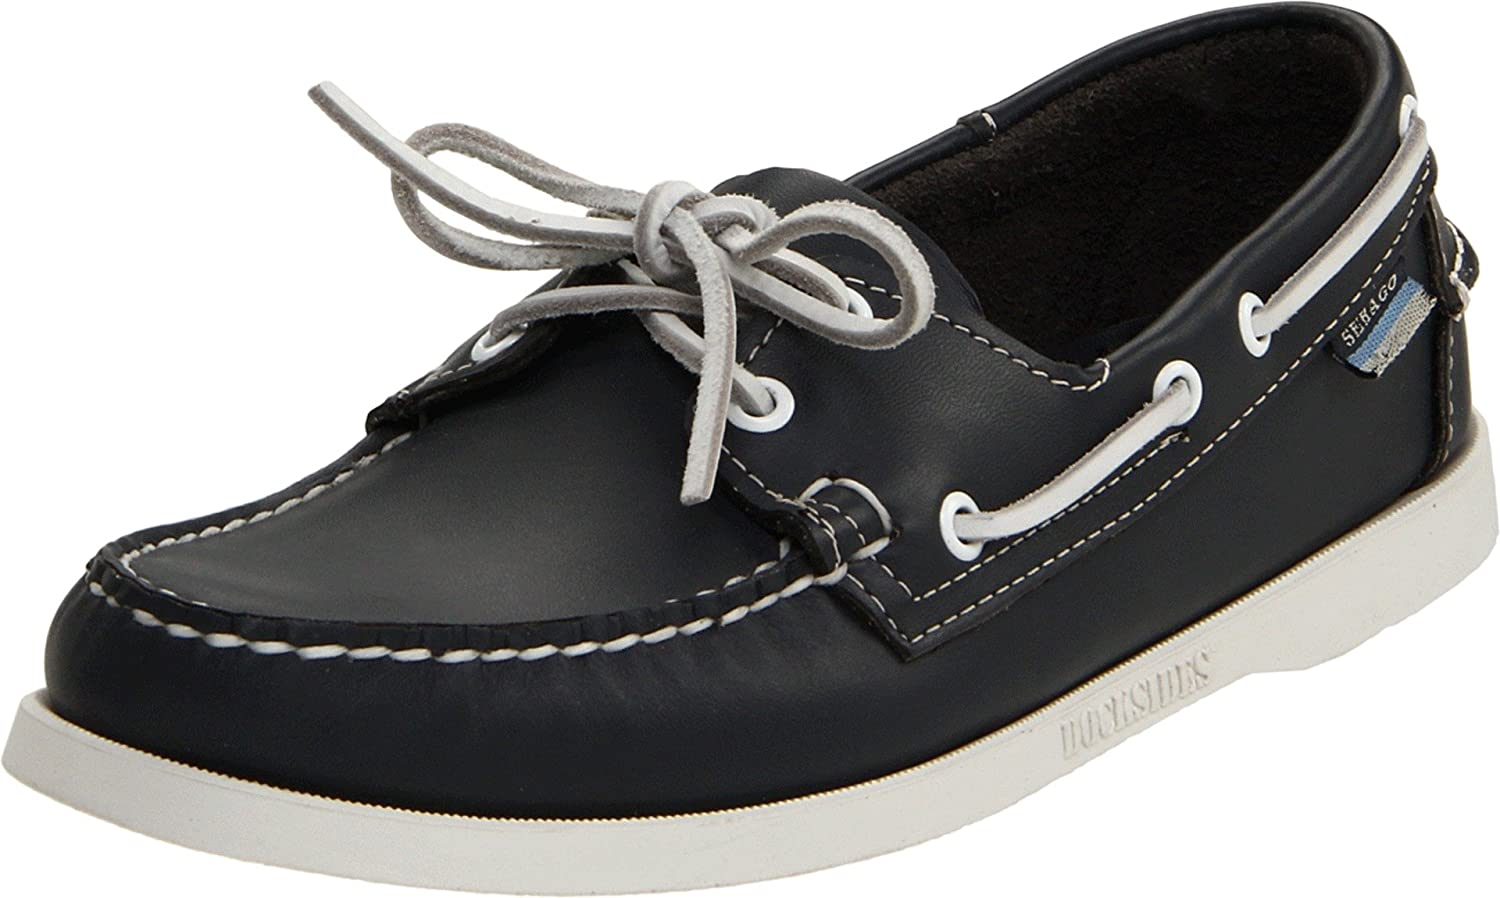 Sebago Men's Docksides Boat Shoe